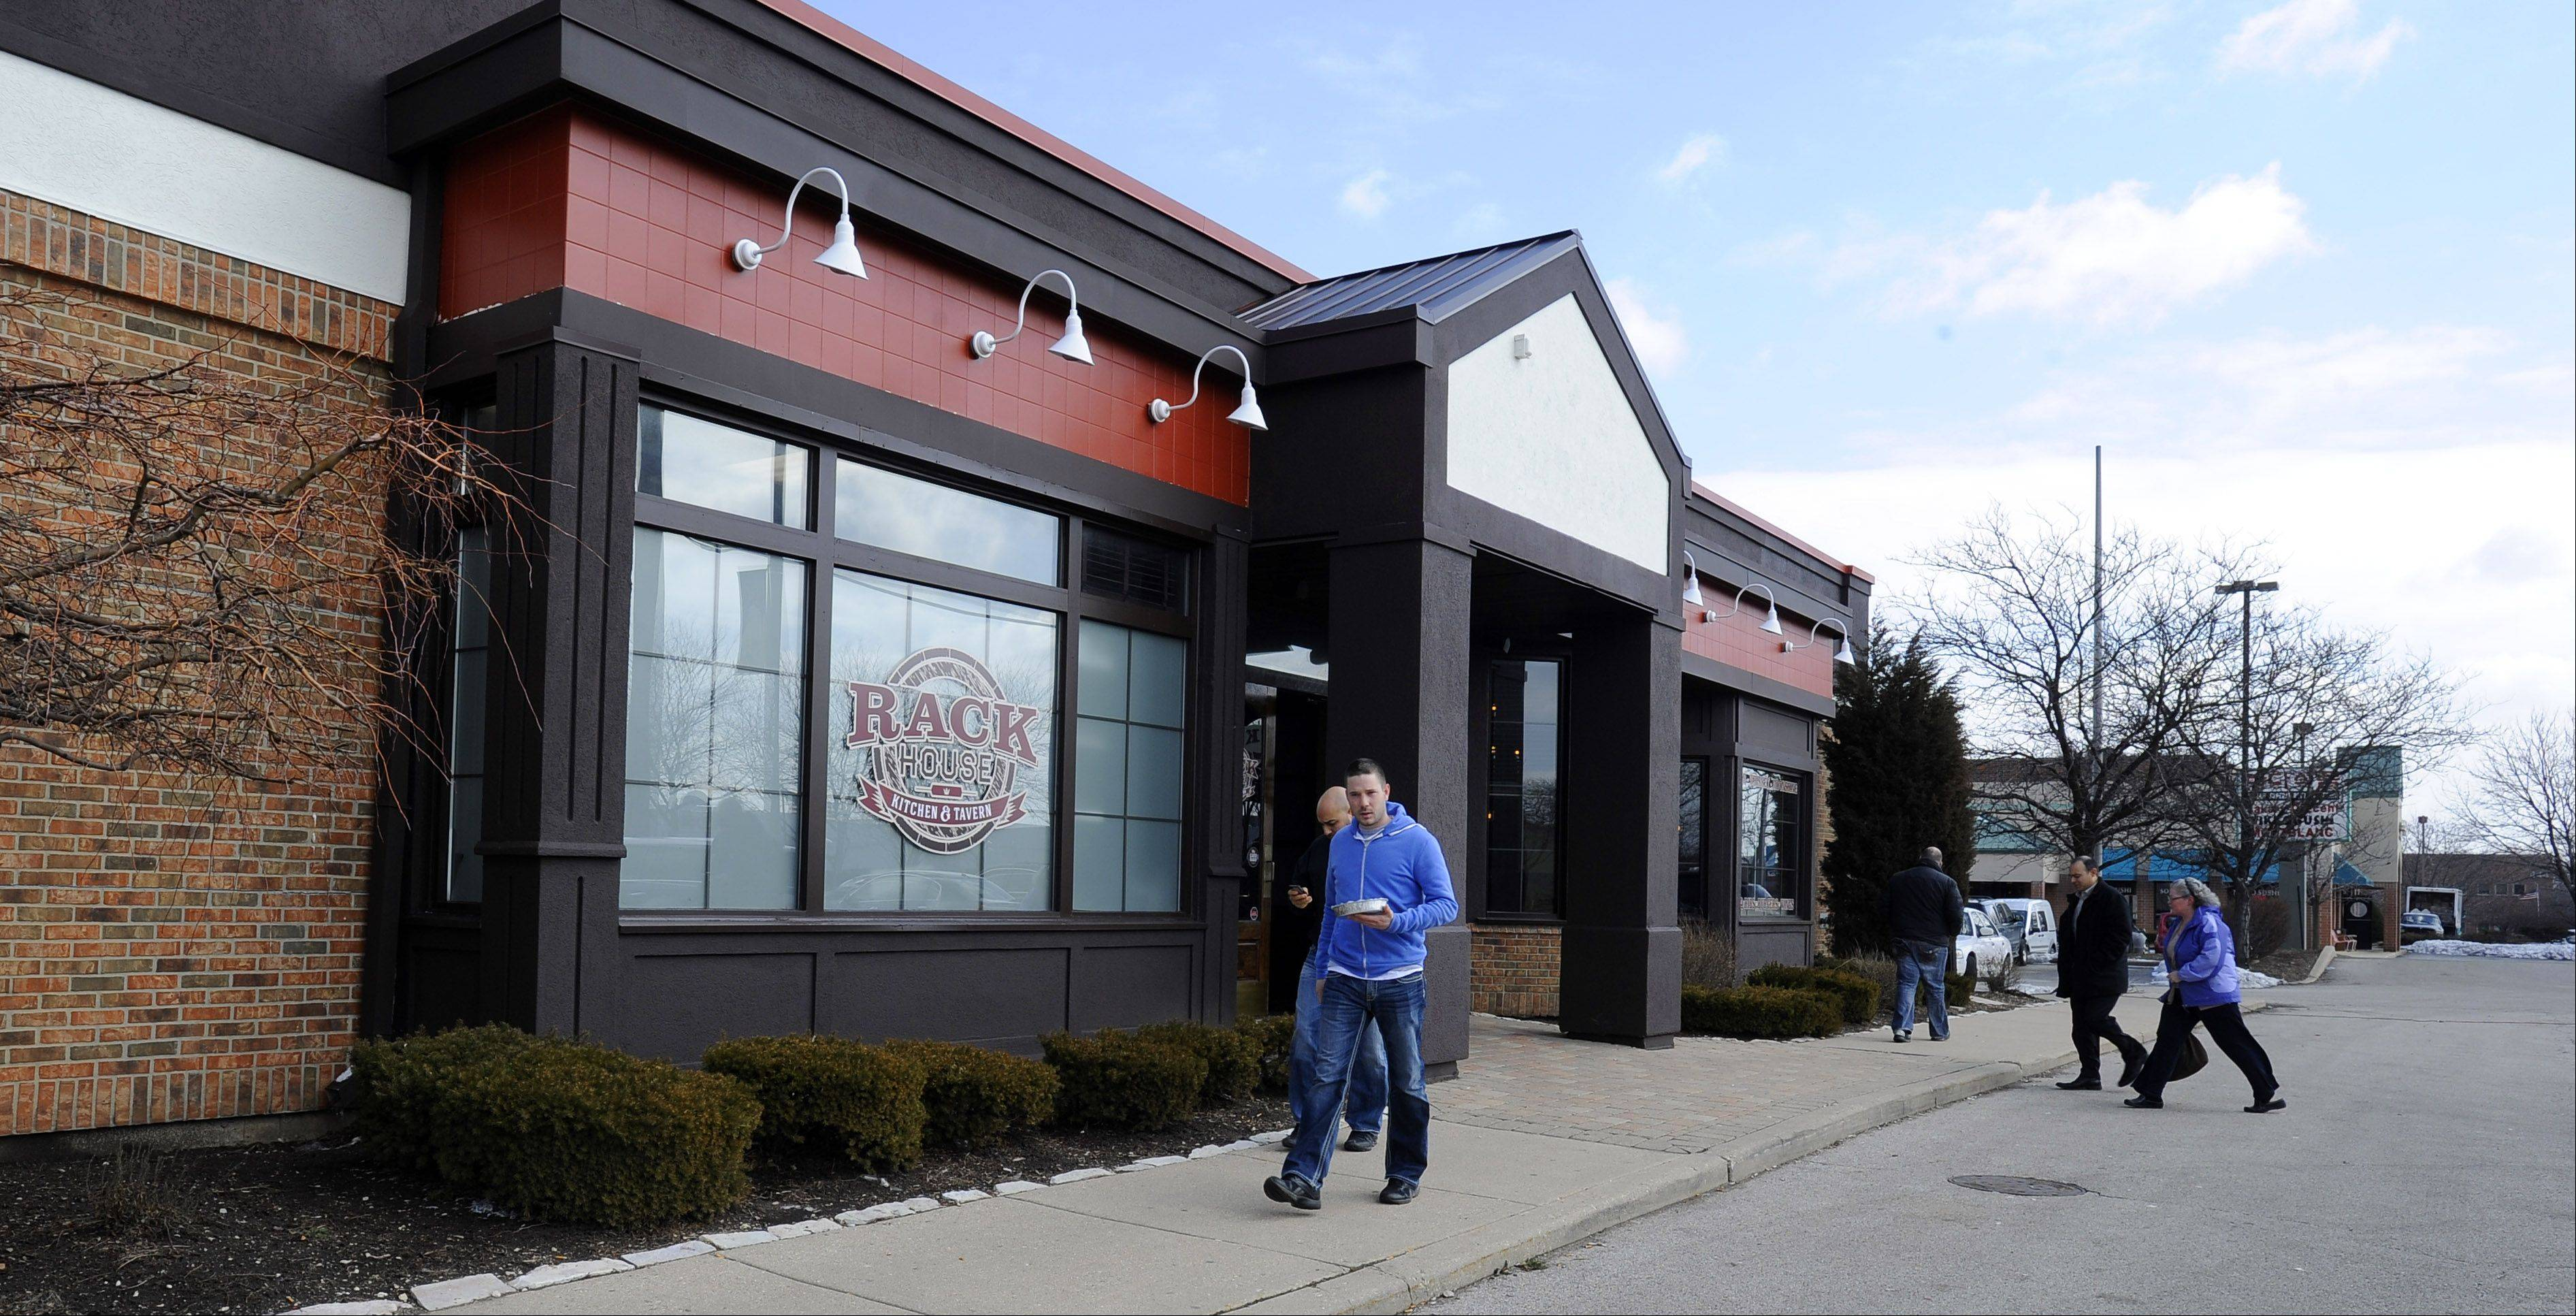 Patrons come and go Tuesday at the Rack House Kitchen & Tavern in Arlington Heights.